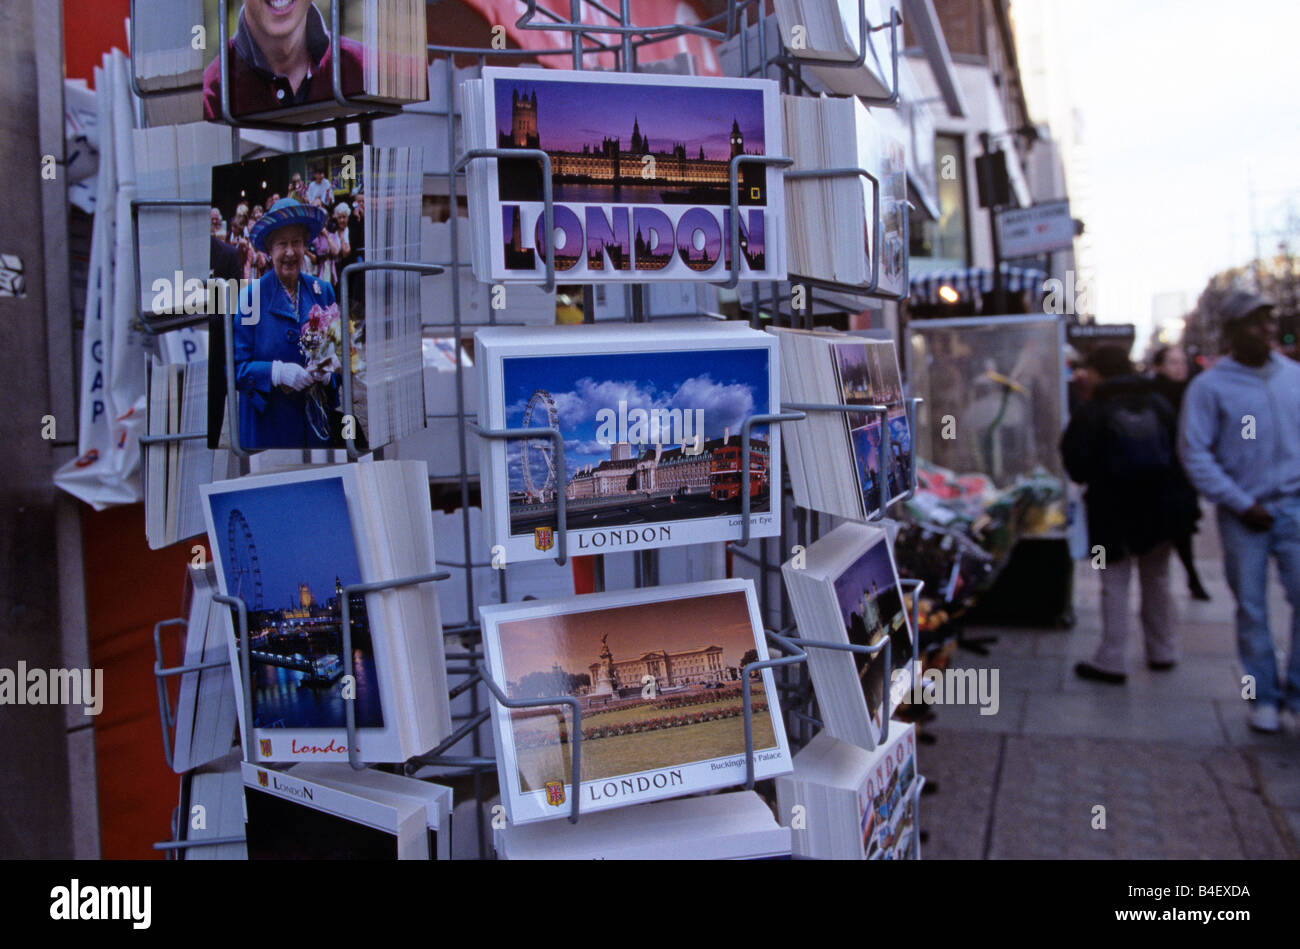 Postcards for sale at souvenir shop, London, England, UK - Stock Image